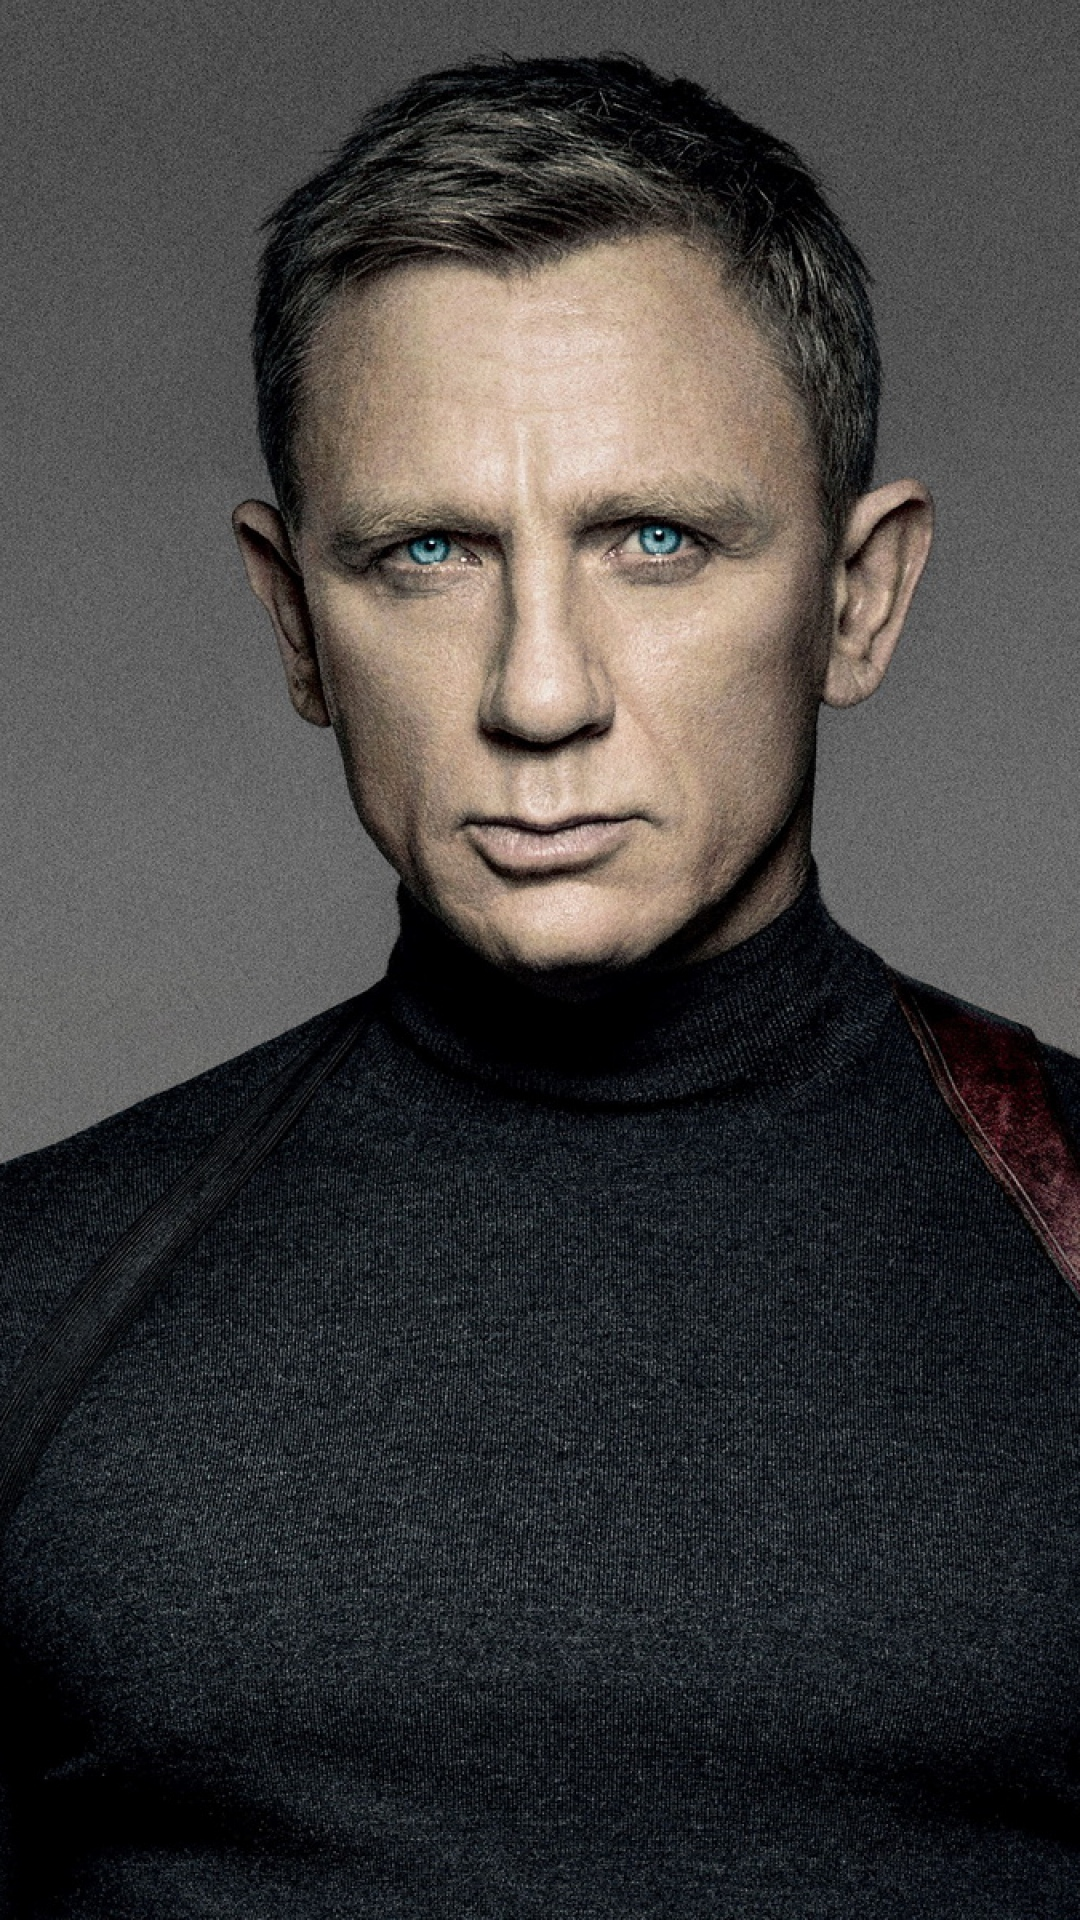 Girl With The Dragon Tattoo Iphone Wallpaper James Bond Spectre Wallpapers